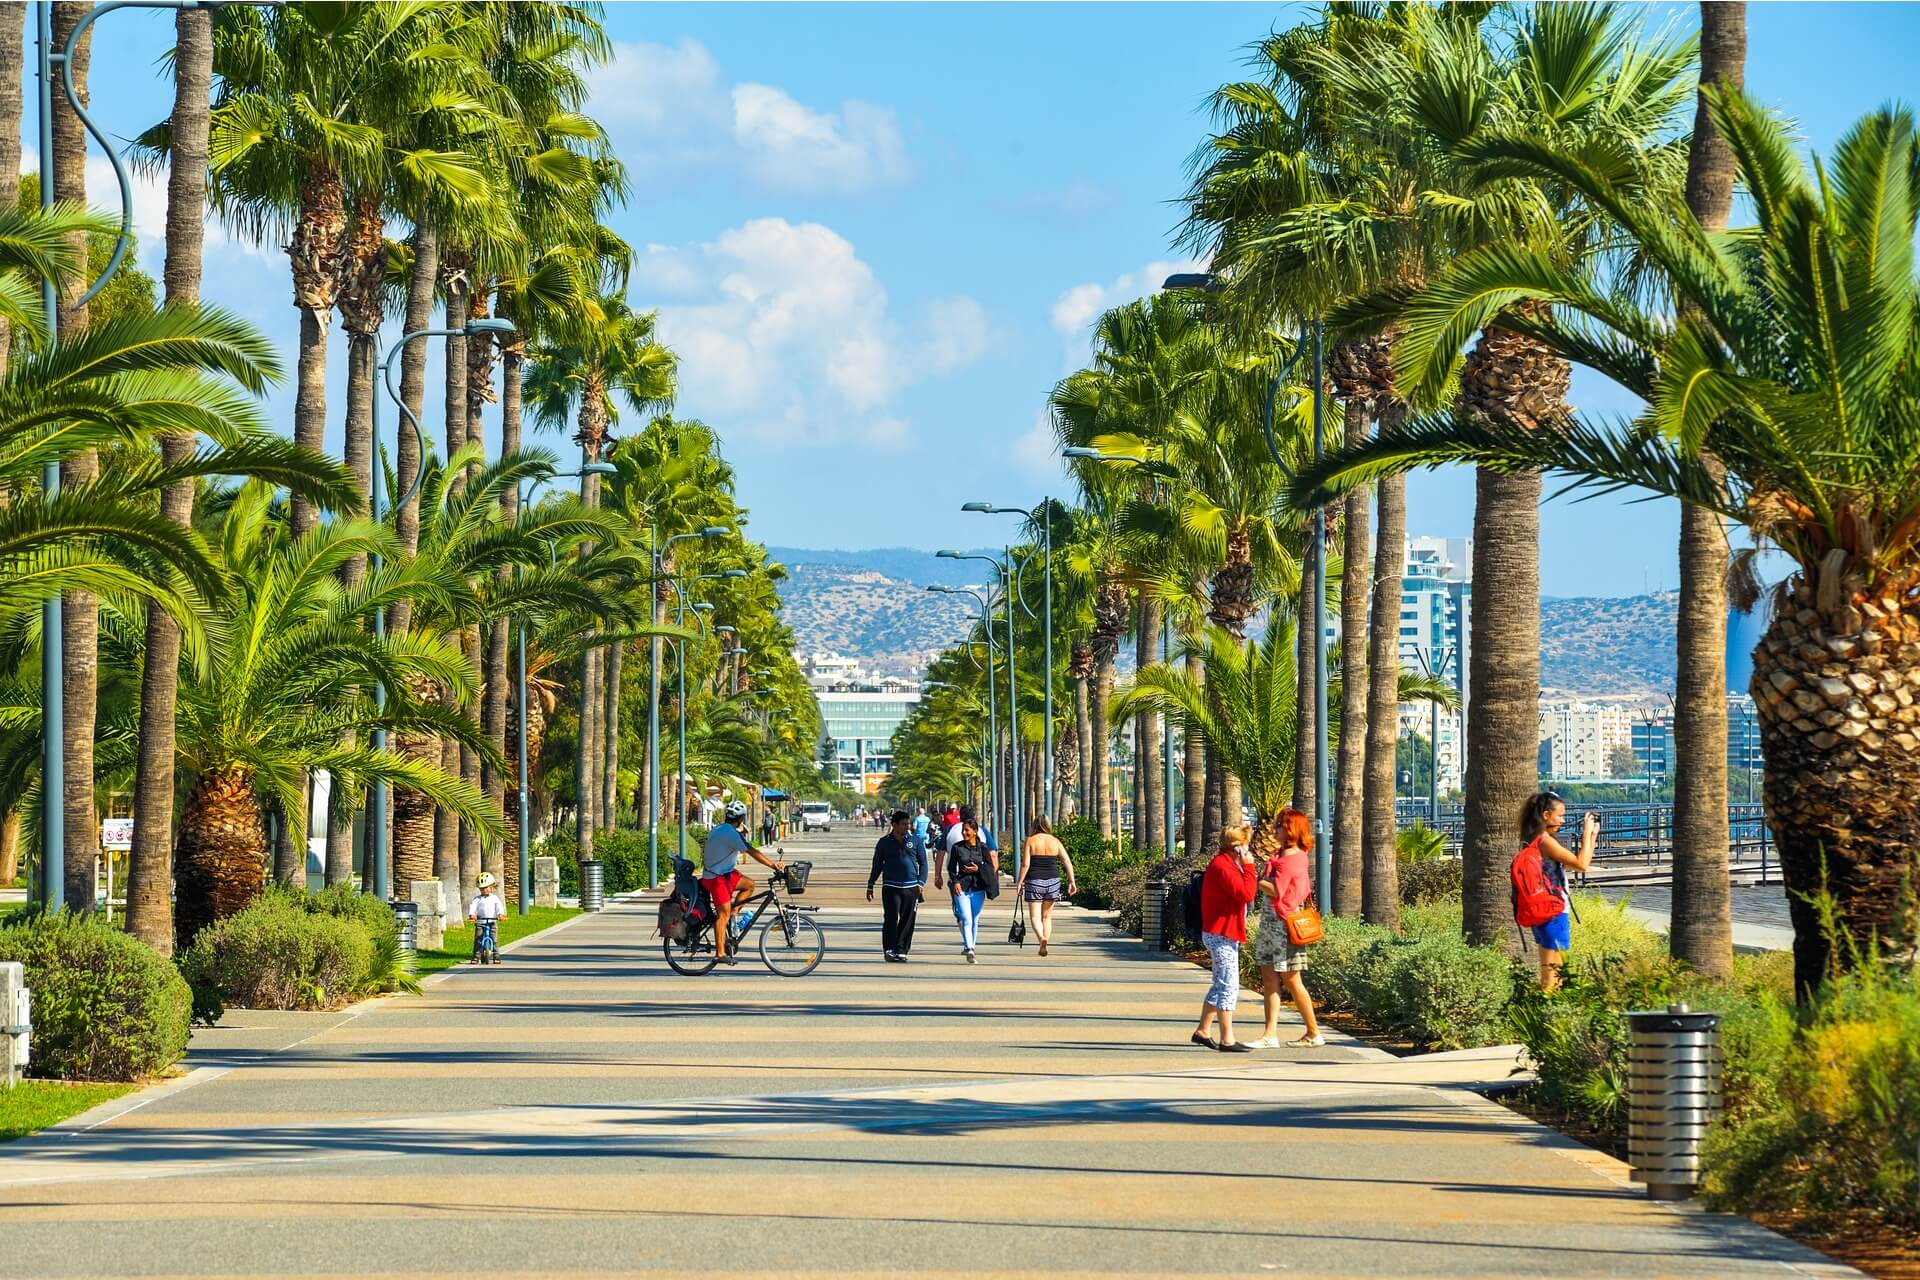 The Boardwalk in Limassol, Cyprus